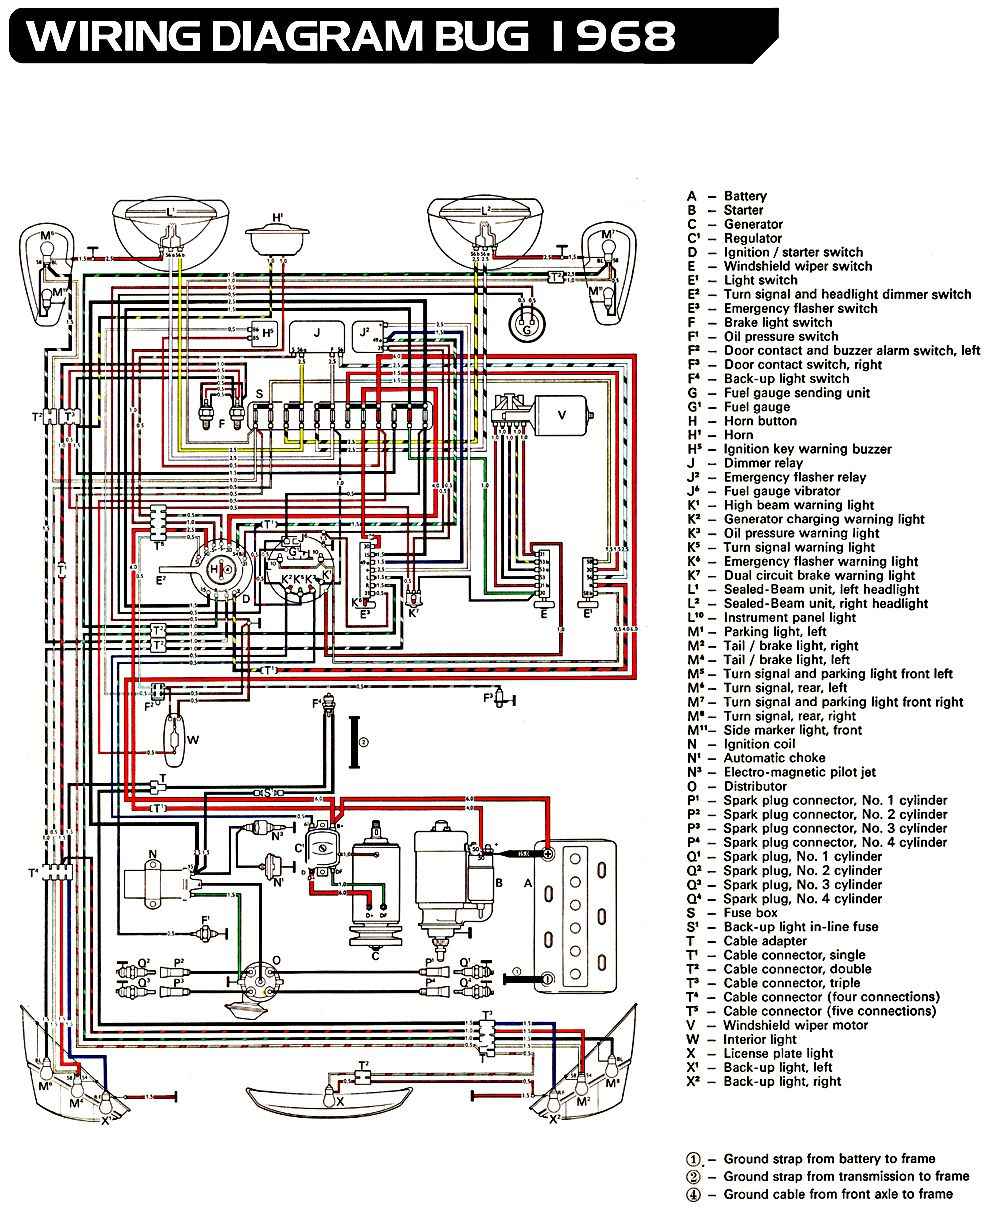 3a1908112d3826270ed5e3be362292bf vw bug ignition wiring diagram 73 vw wiring diagram free 1973 vw wiring diagram at fashall.co